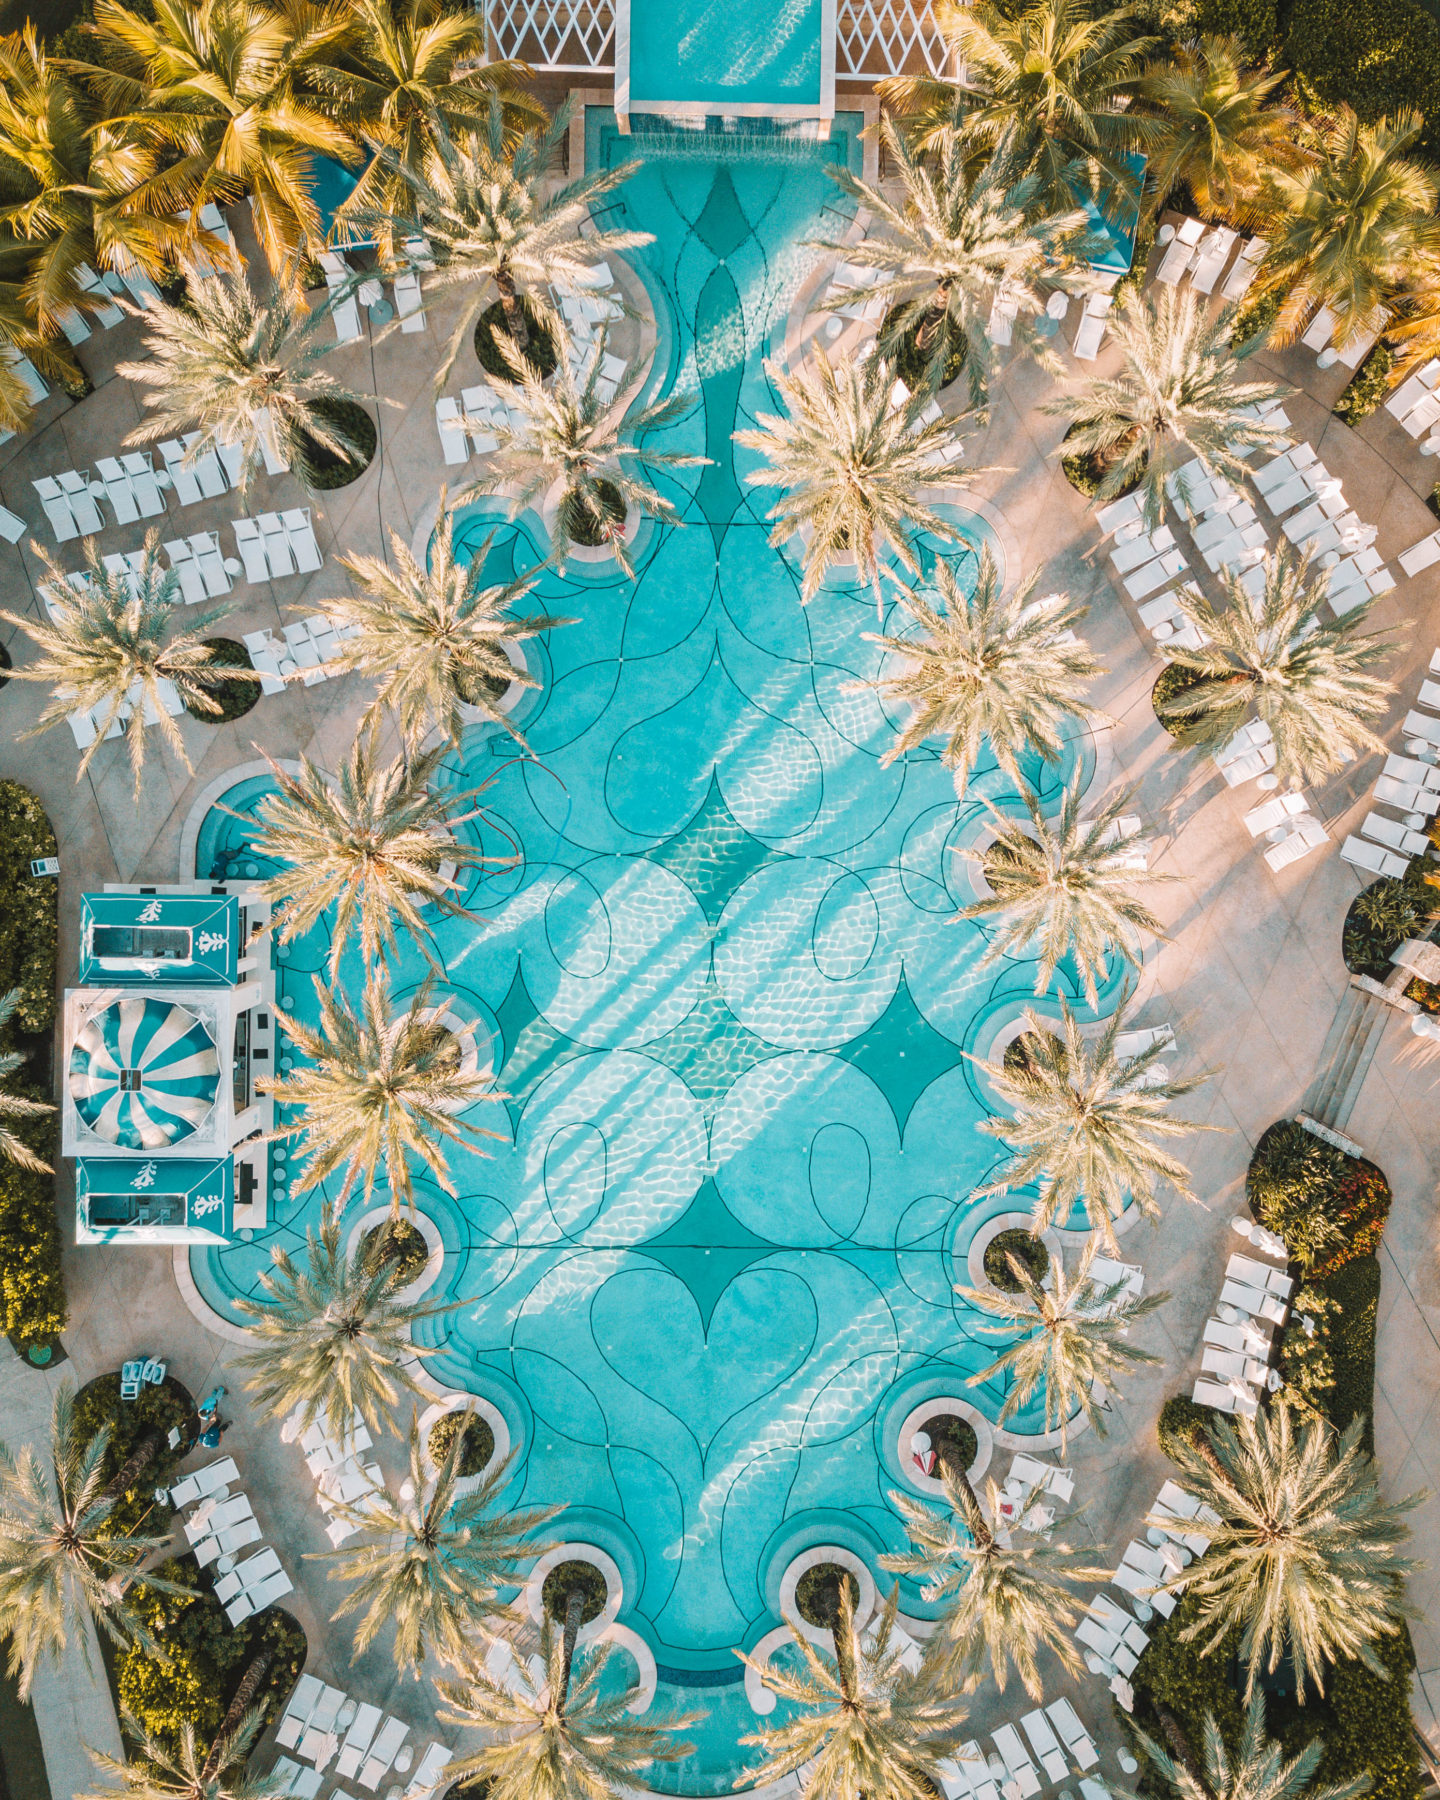 drone shot of resort pool in the bahamas